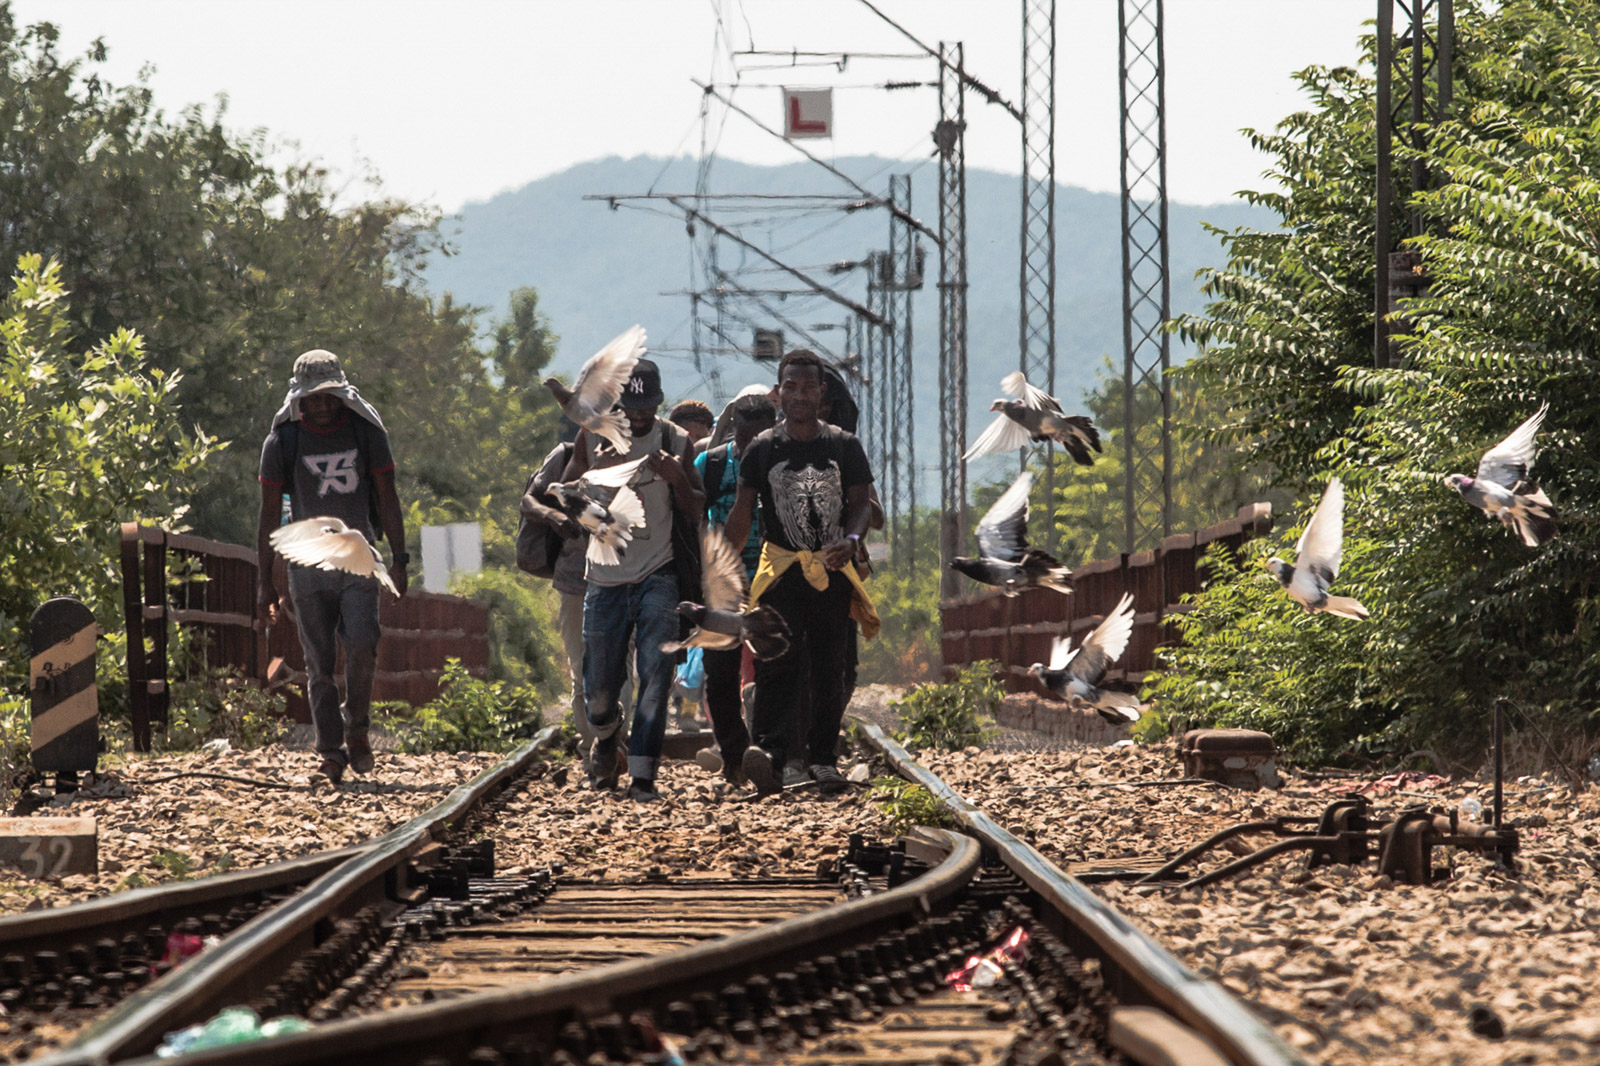 Gevgelia, Macedonia - August 8, 2015: A group of asylum seekers who crossed from Greece to Macedonia follow the lead of railroad track heading towards Gevgelia train station, from where they proceed towards Serbia and the countries of the European Union.